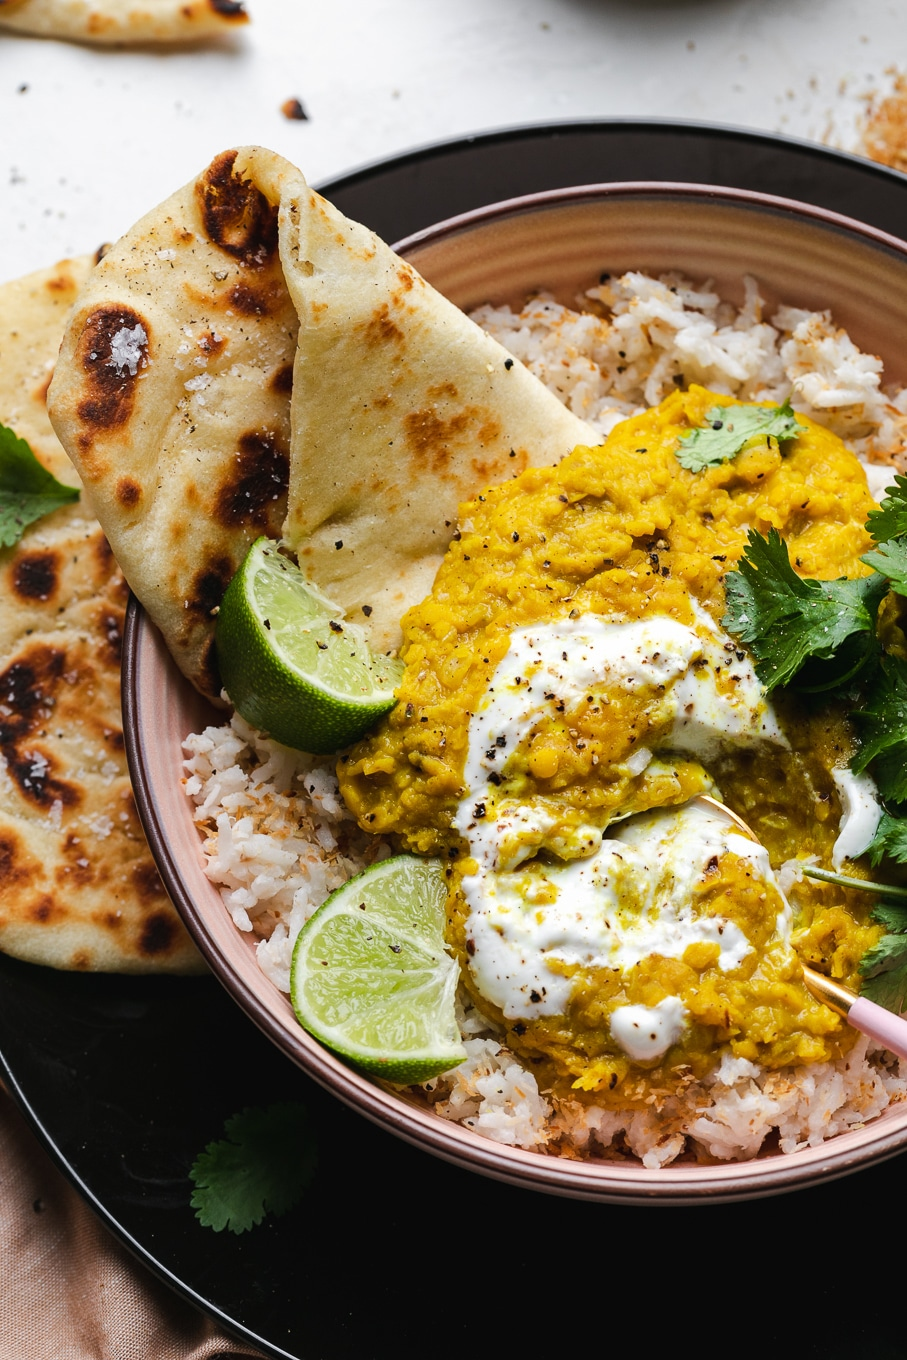 Overhead close up shot of a bowl of toasted coconut rice, dal, lime wedges, cilantro, and naan